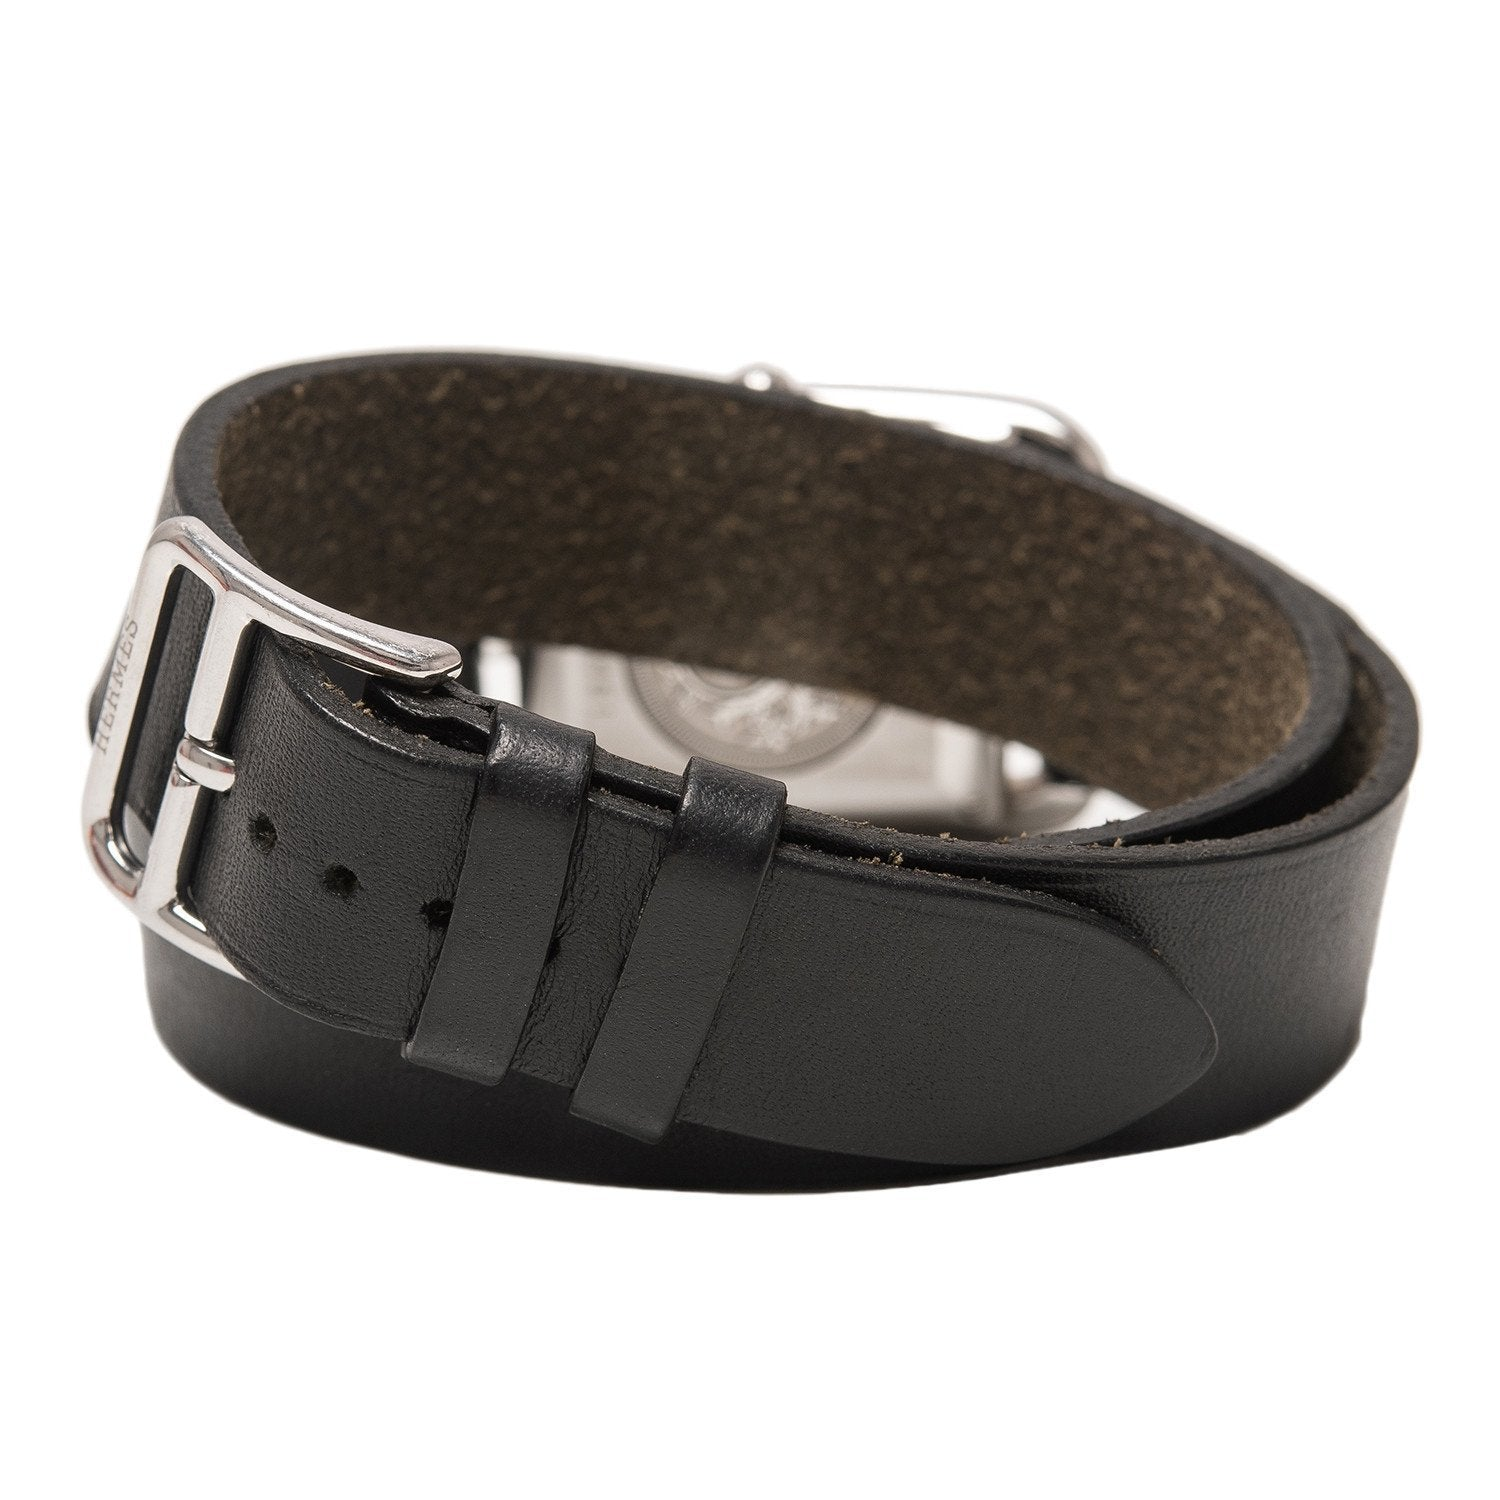 Hermes Cape Cod Watch Gm Black Barenia Leather Double Tour Band Preloved Excellent Accessories